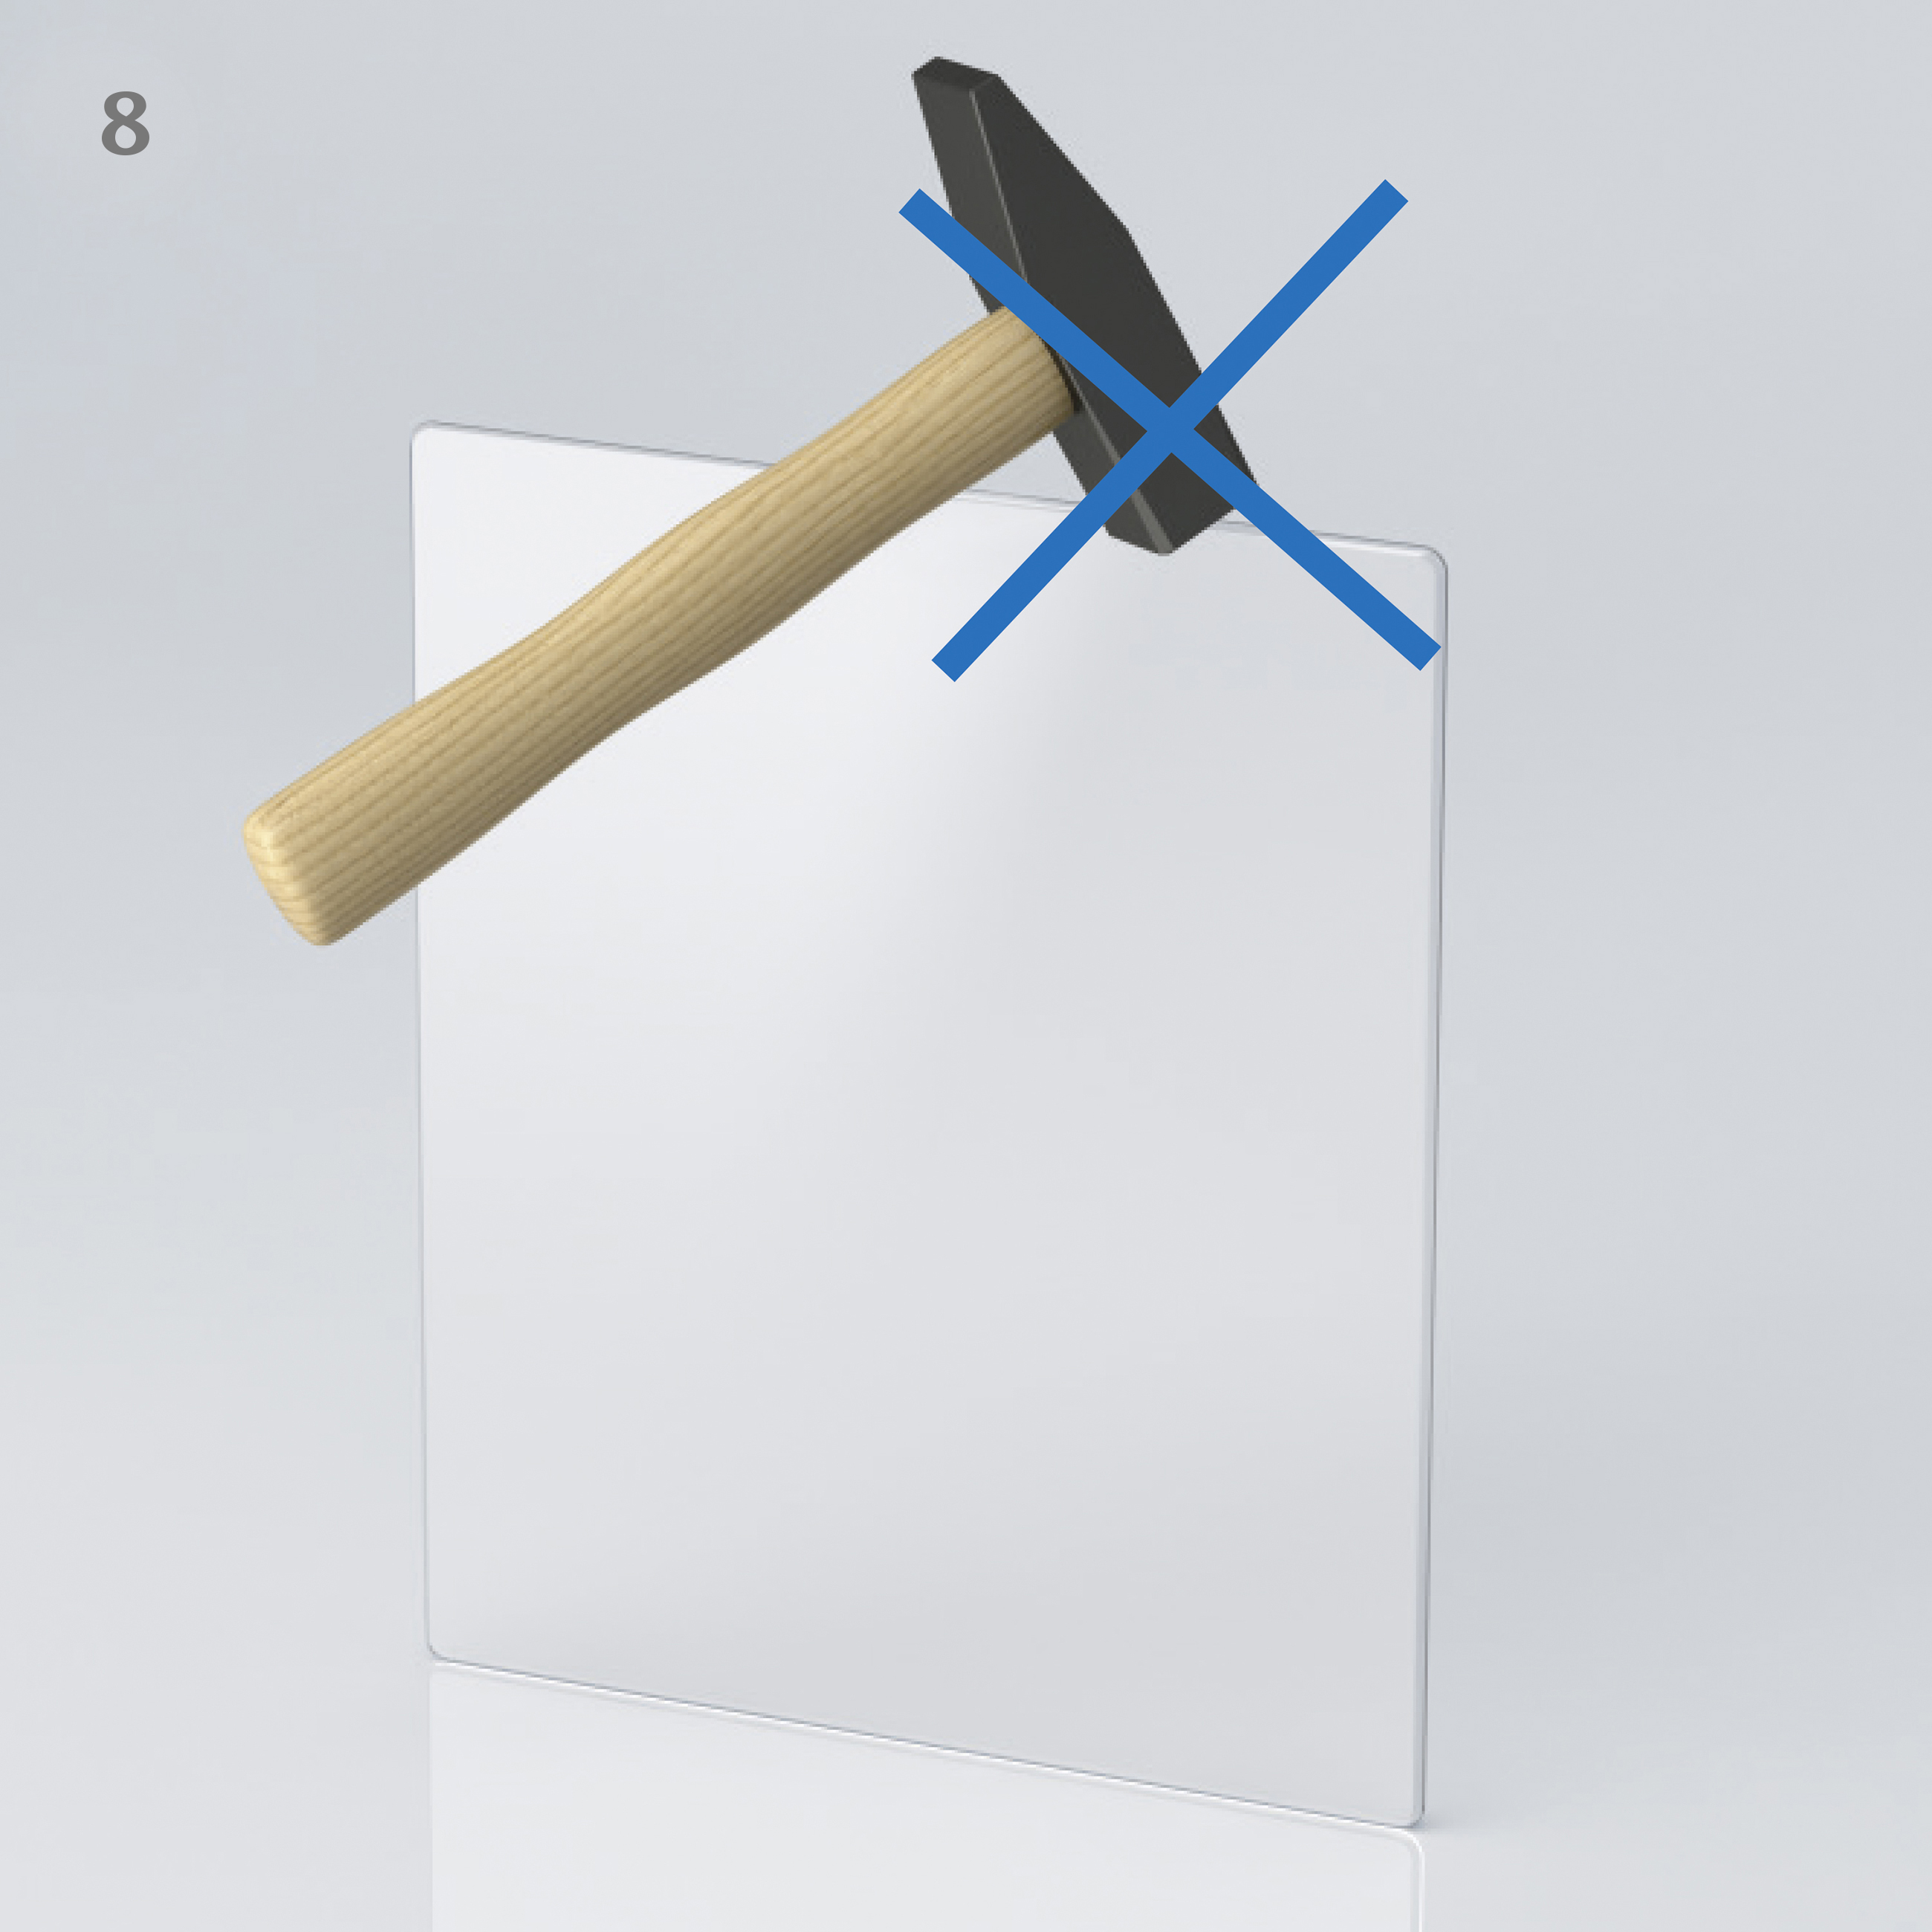 Illustration of a hammer hitting the side of a glass panel